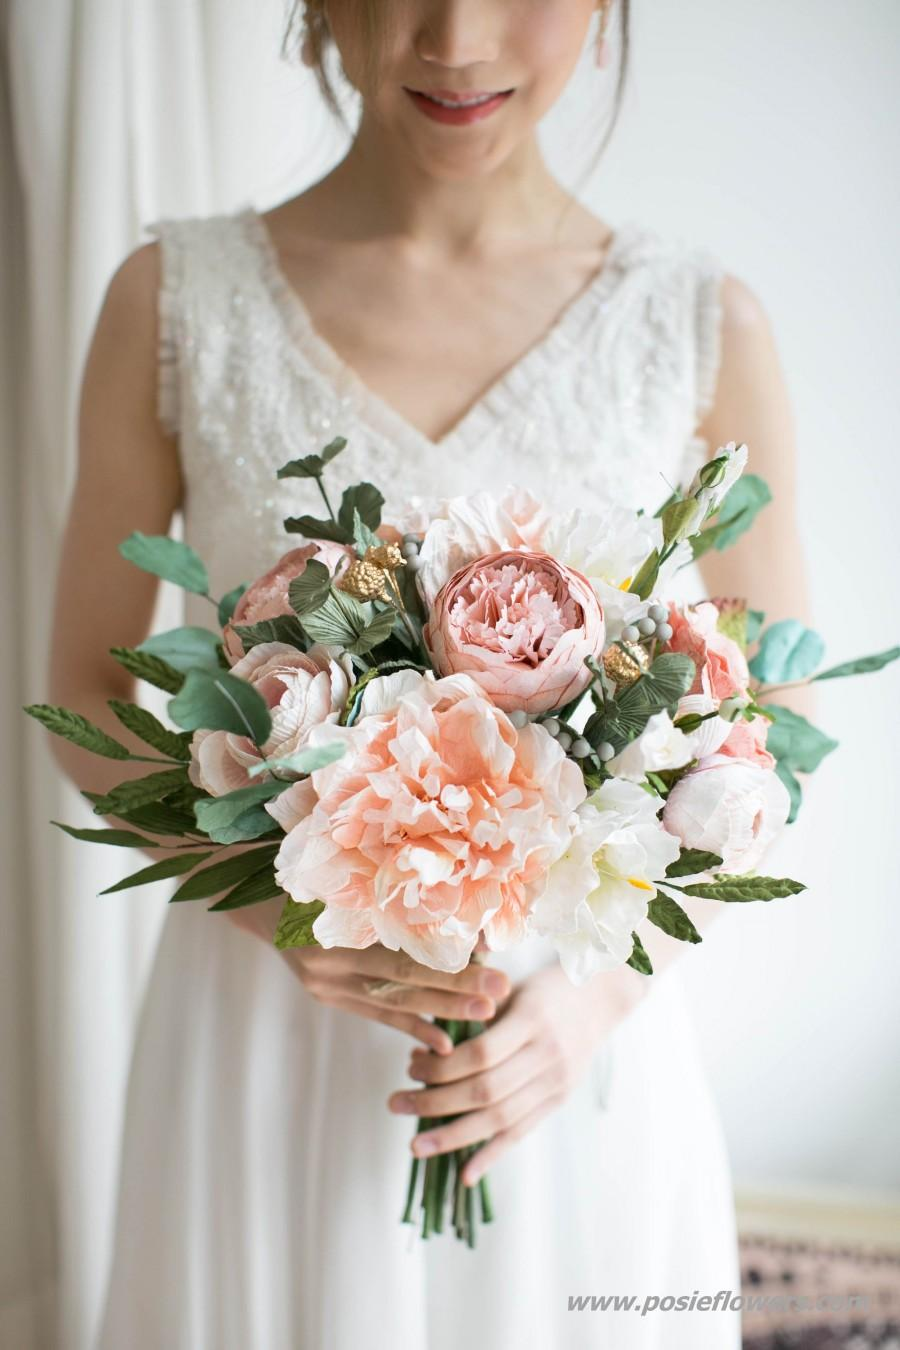 Wedding - Hand Tied Peach Paper Bridal Bouquet -  Boho Paper Bouquet, Boho Peach Bouquet, Coral Paper Bouquet, Diameter 9 inches